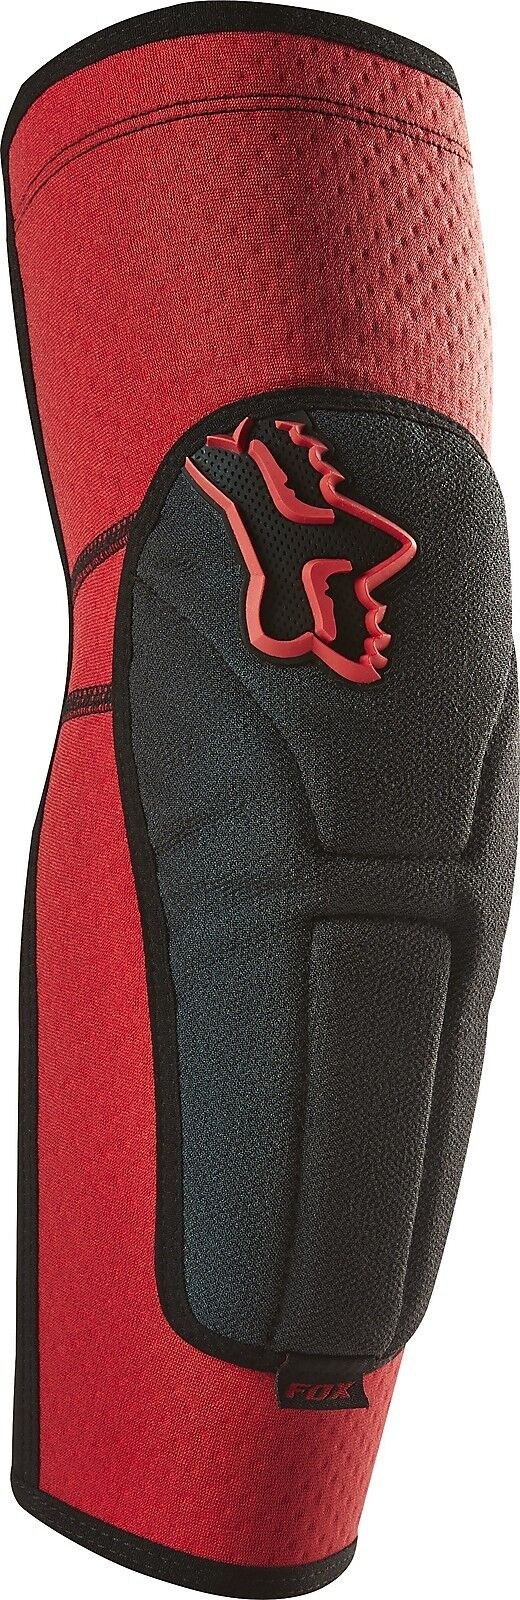 Fox Racing Launch Enduro Elbow Pad rosso